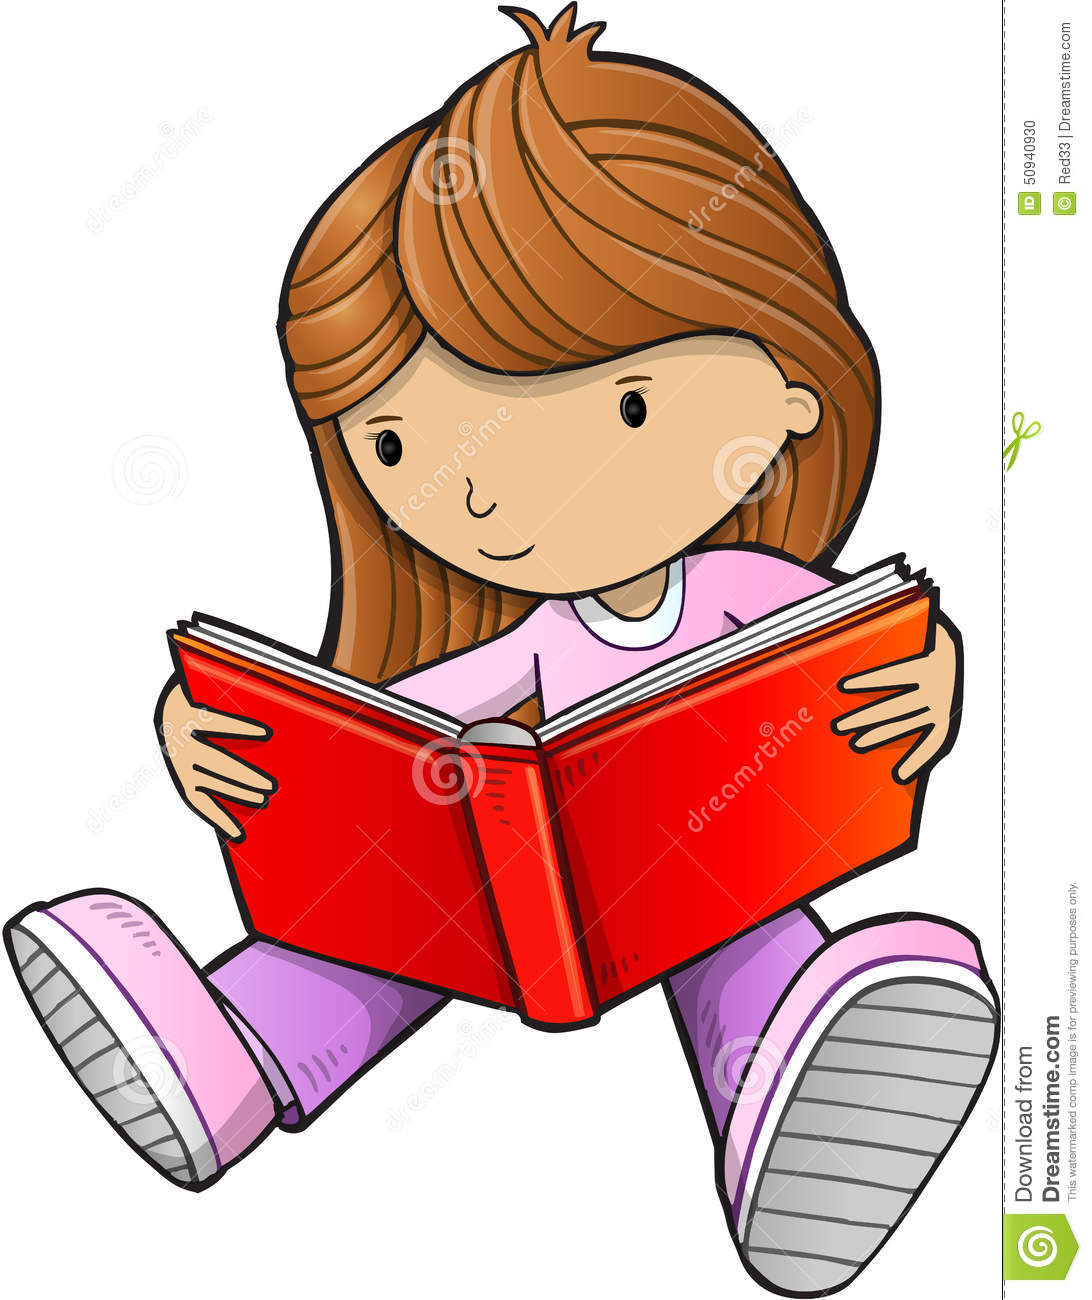 Girl Reading Book Vector Stock Vector - Image: 50940930